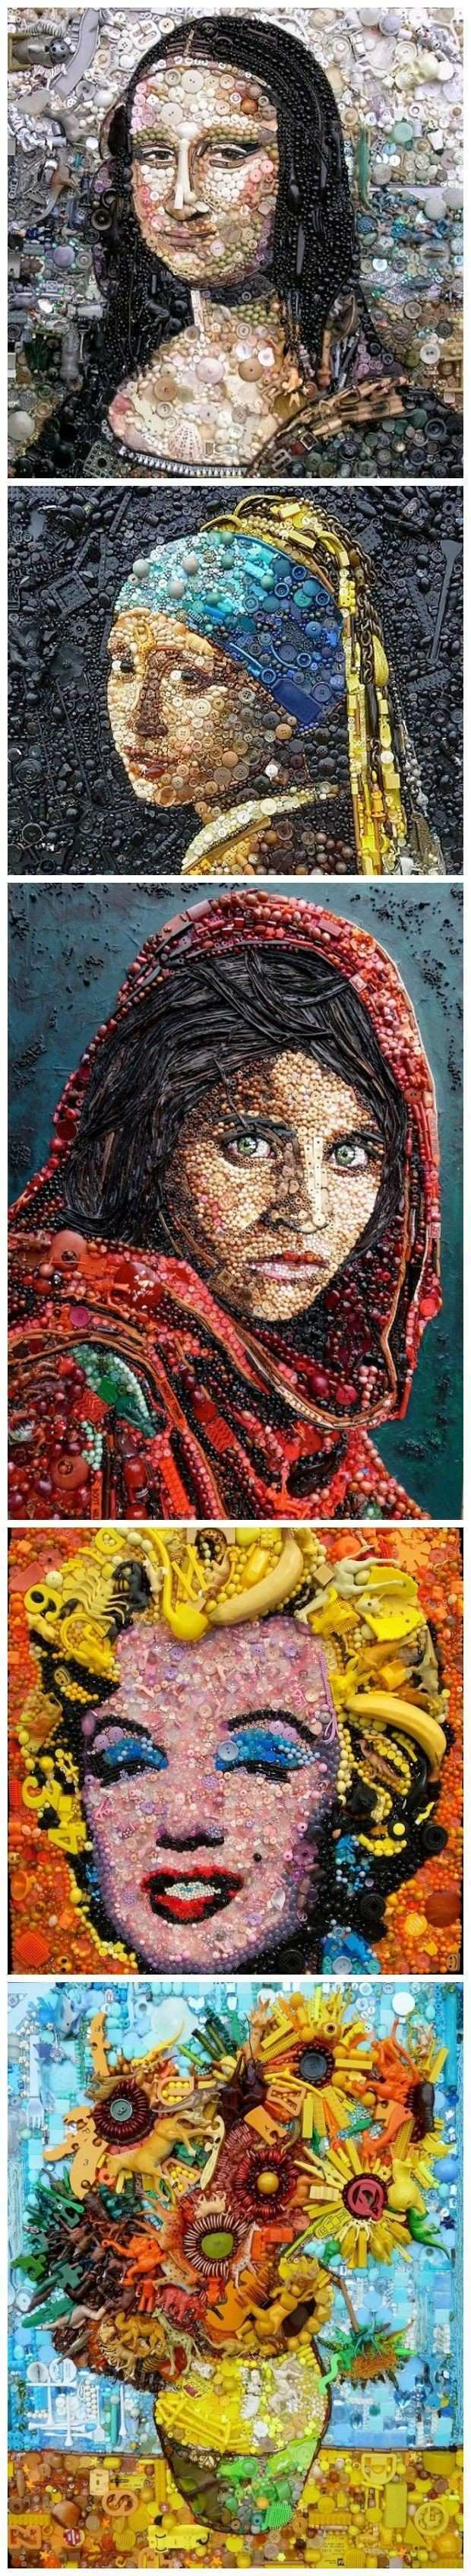 Jane Perkins Recreates Famous Works of Art with Buttons Beads and